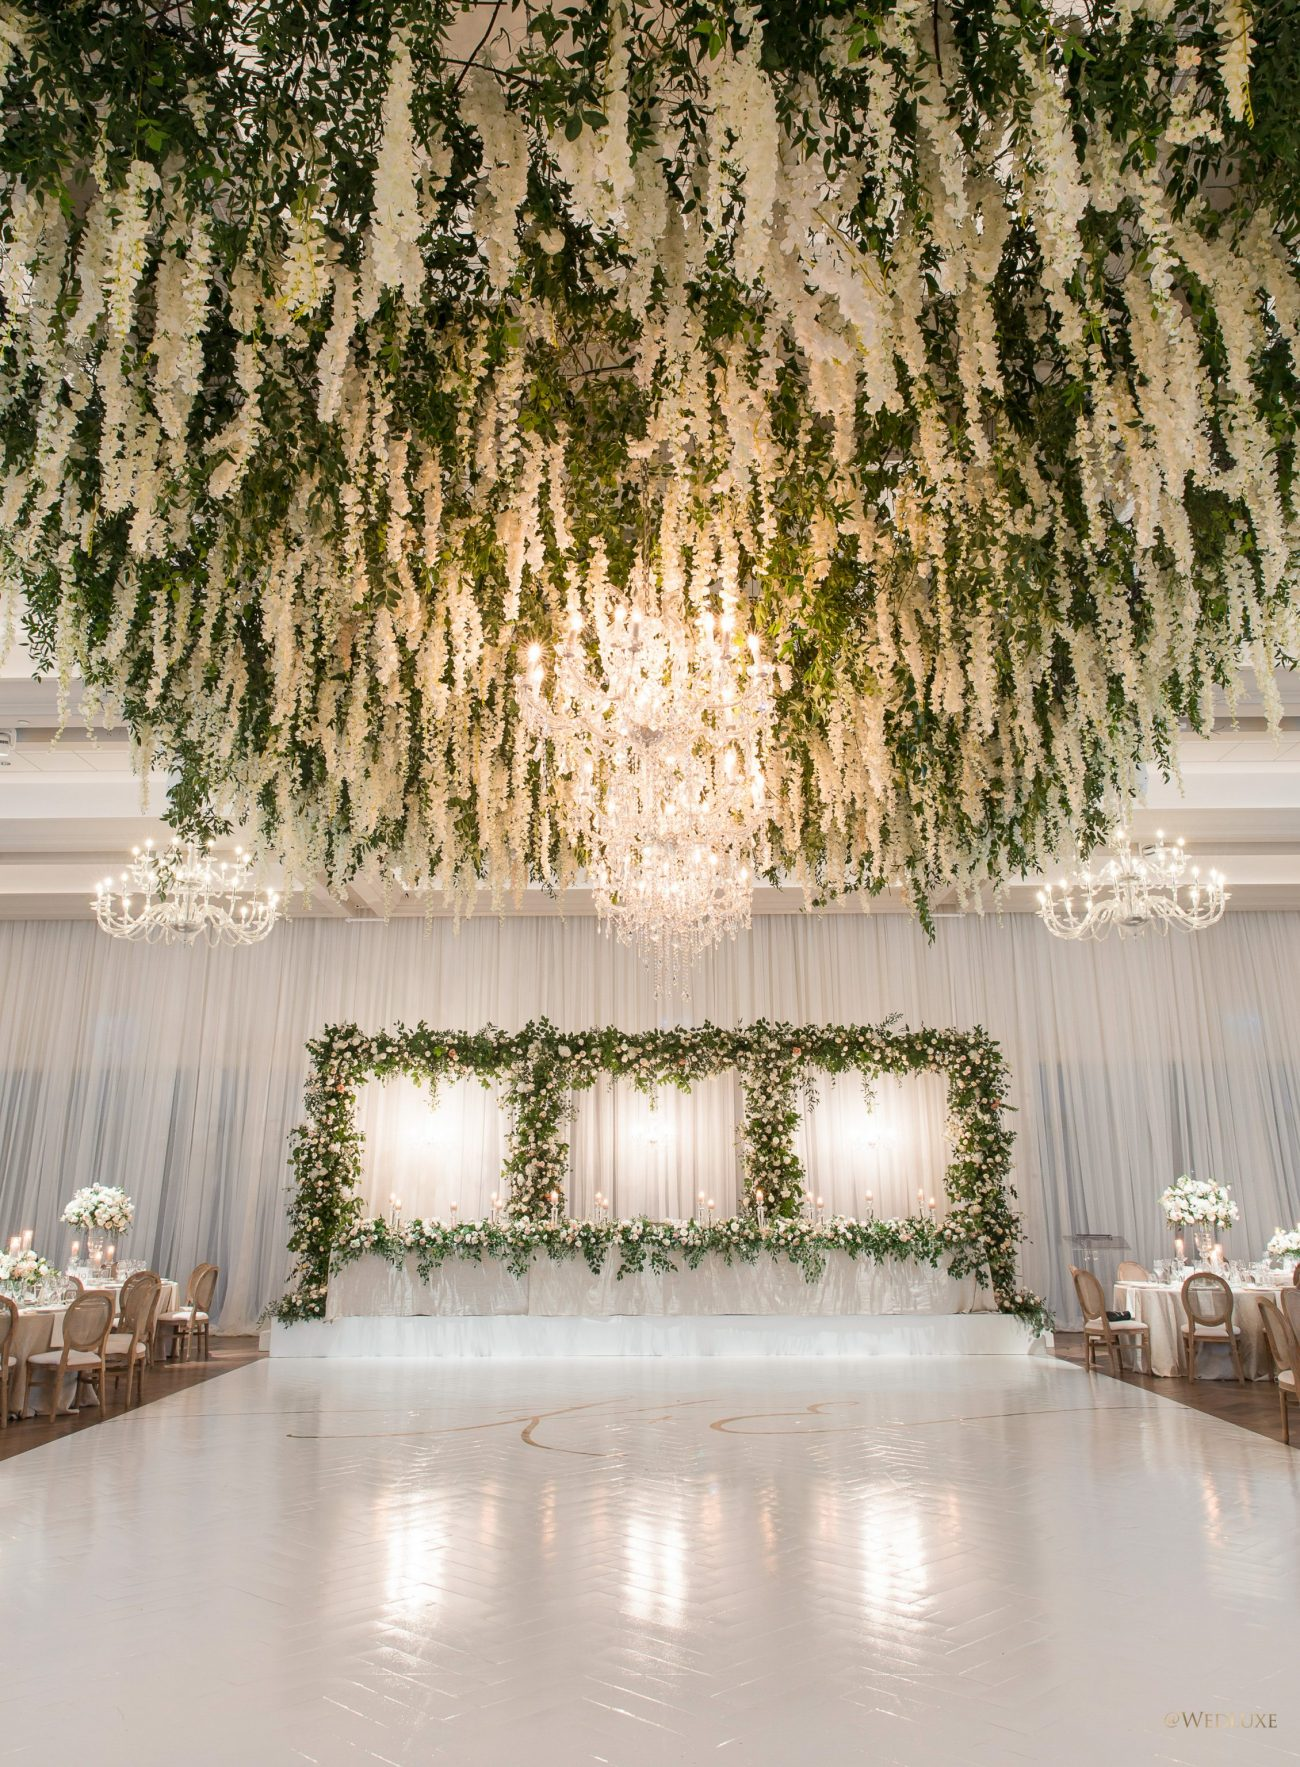 Elaborate wisteria and flowers hanging ceiling feature for wedding